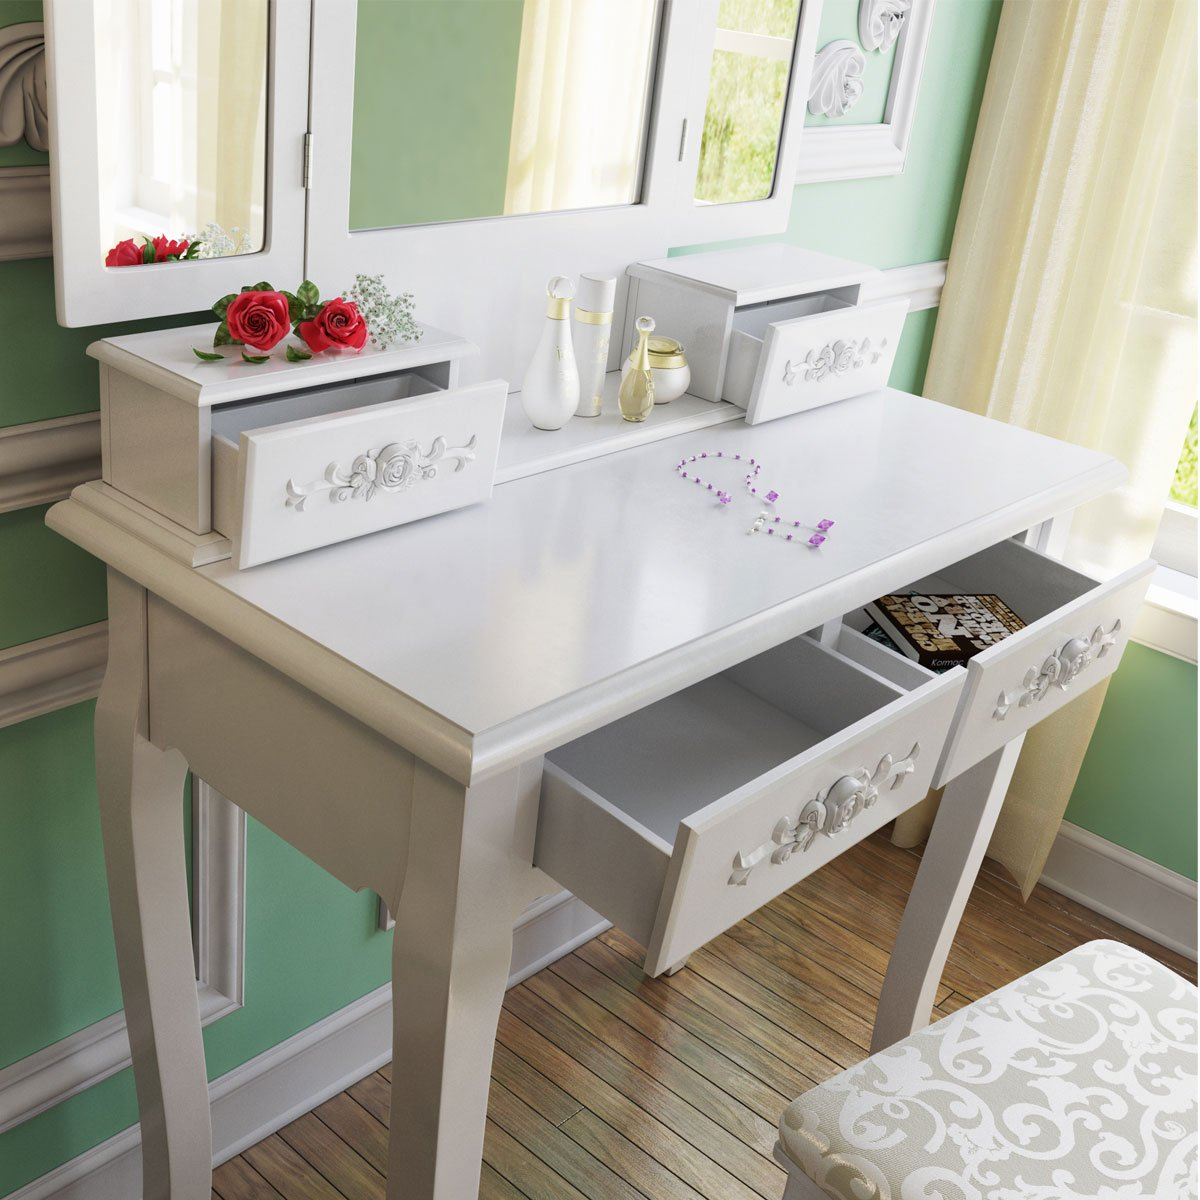 Tribesigns Wood Makeup Vanity Table Set with 3 Mirror and Stool Bedroom Dressing Table Dresser Desk, White 3